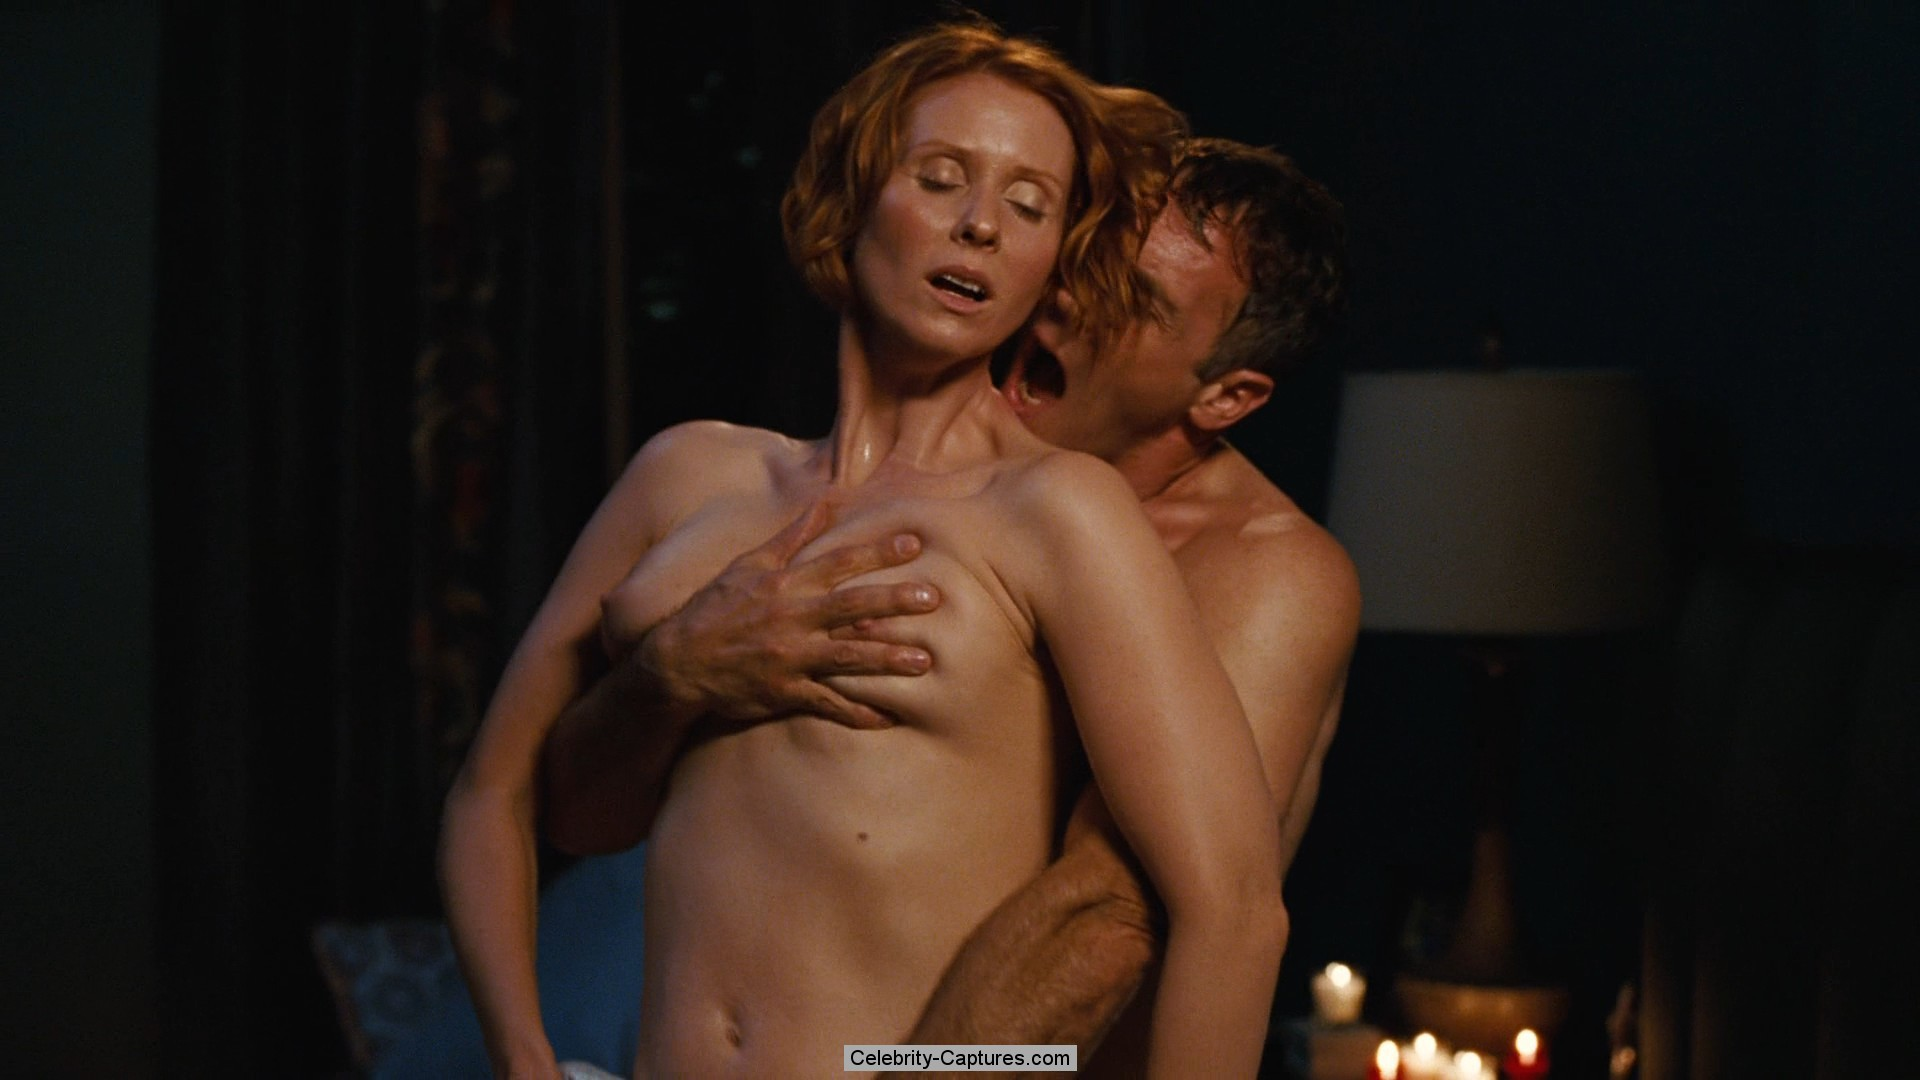 Sex and the city season 5 sex scenes